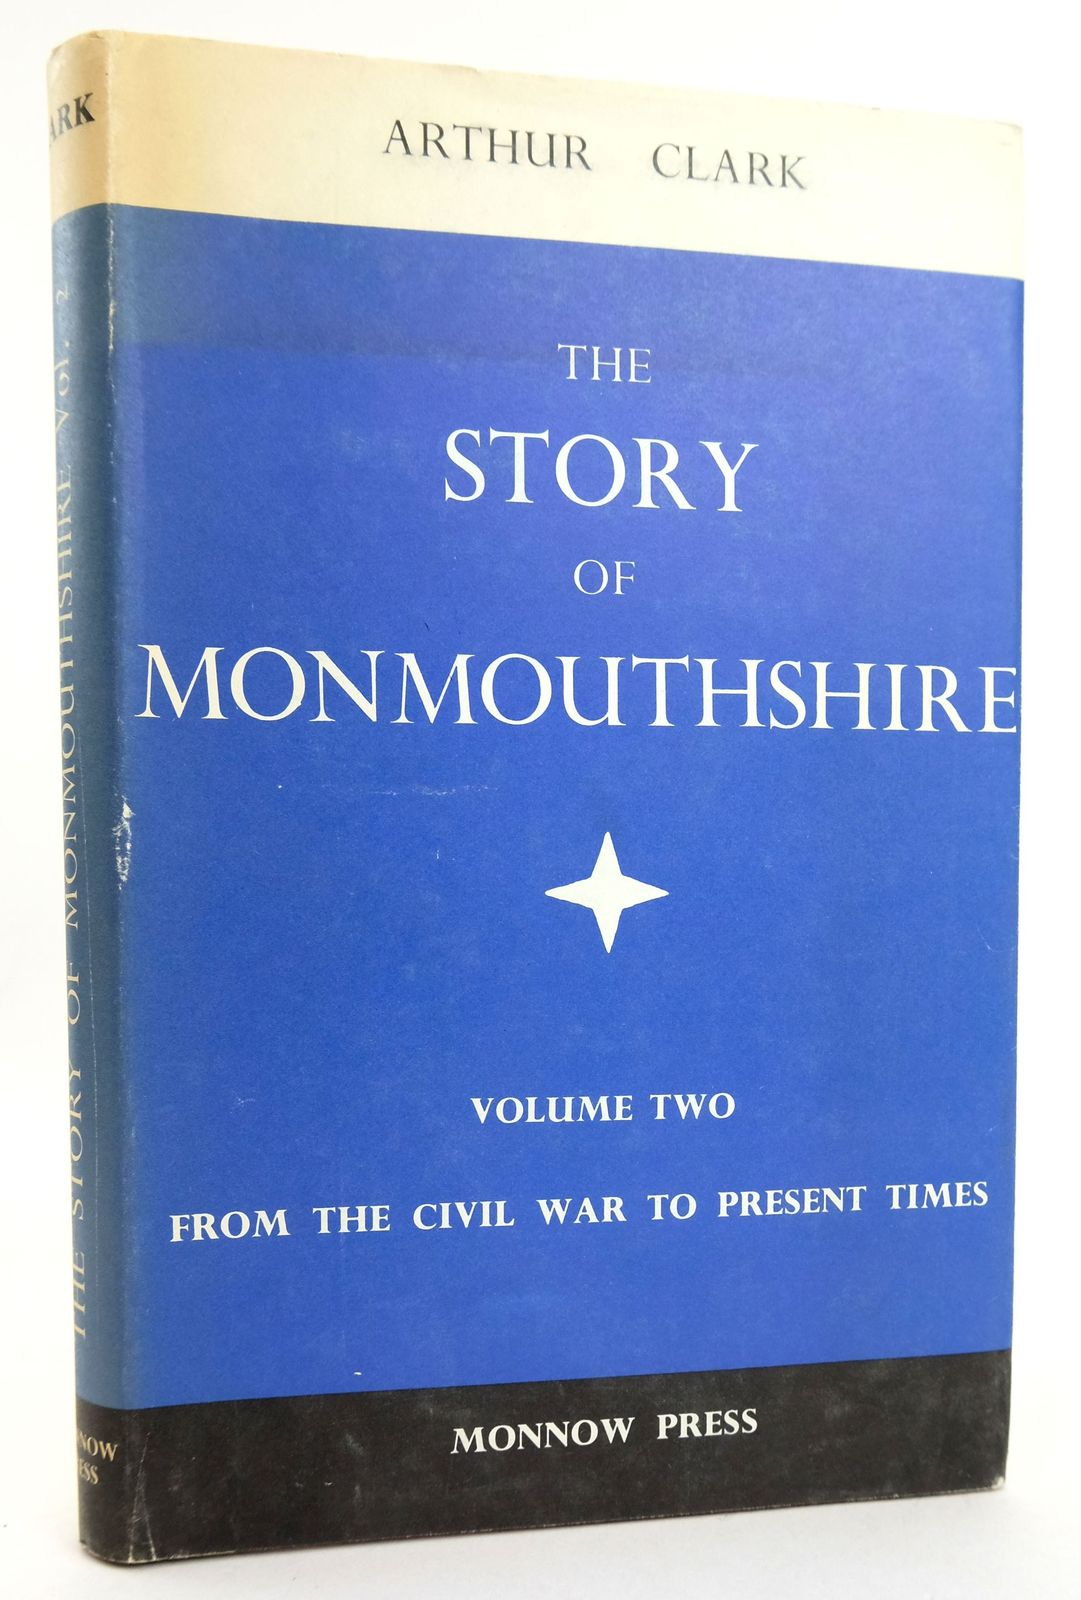 Photo of THE STORY OF MONMOUTHSHIRE VOLUME TWO written by Clark, Arthur published by Monnow Press (STOCK CODE: 1819068)  for sale by Stella & Rose's Books